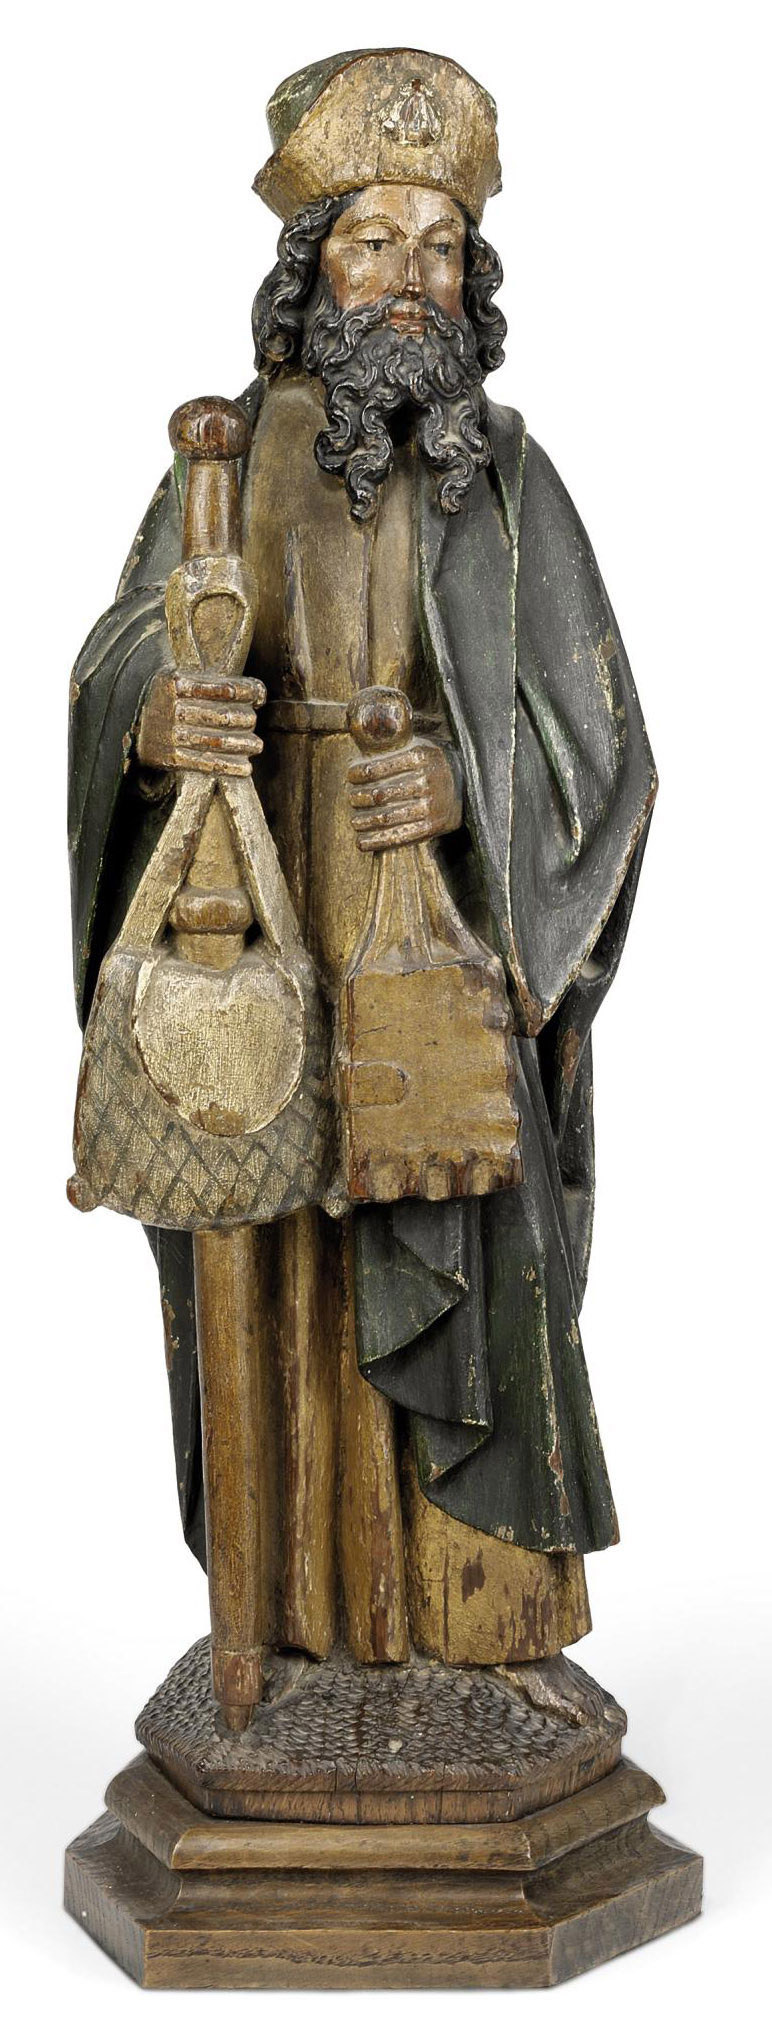 A POLYCHROME CARVED WOOD FIGURE OF ST. JAMES OF COMPOSTELA